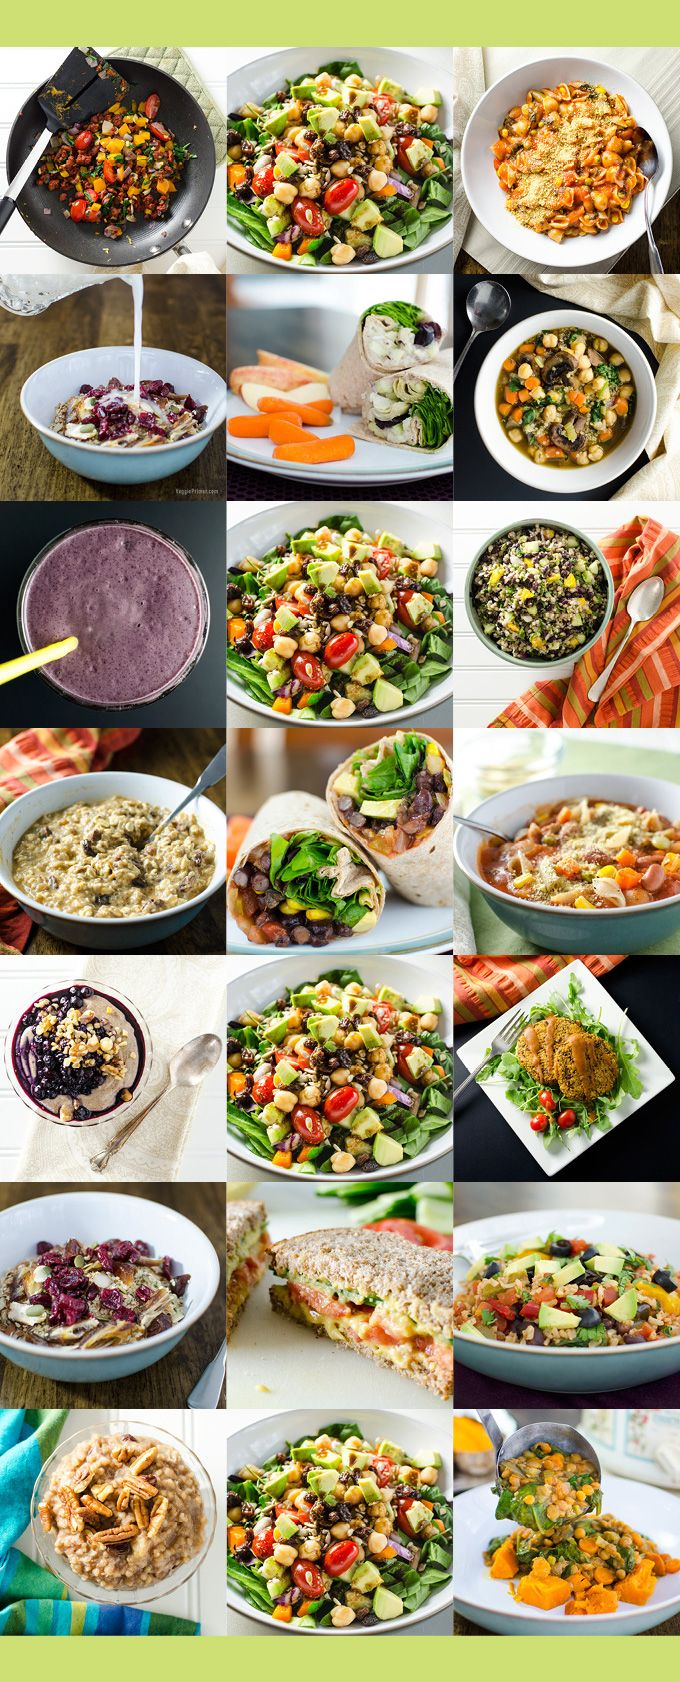 This Easy One Week Plant Based Meal Plan Helps You Stay